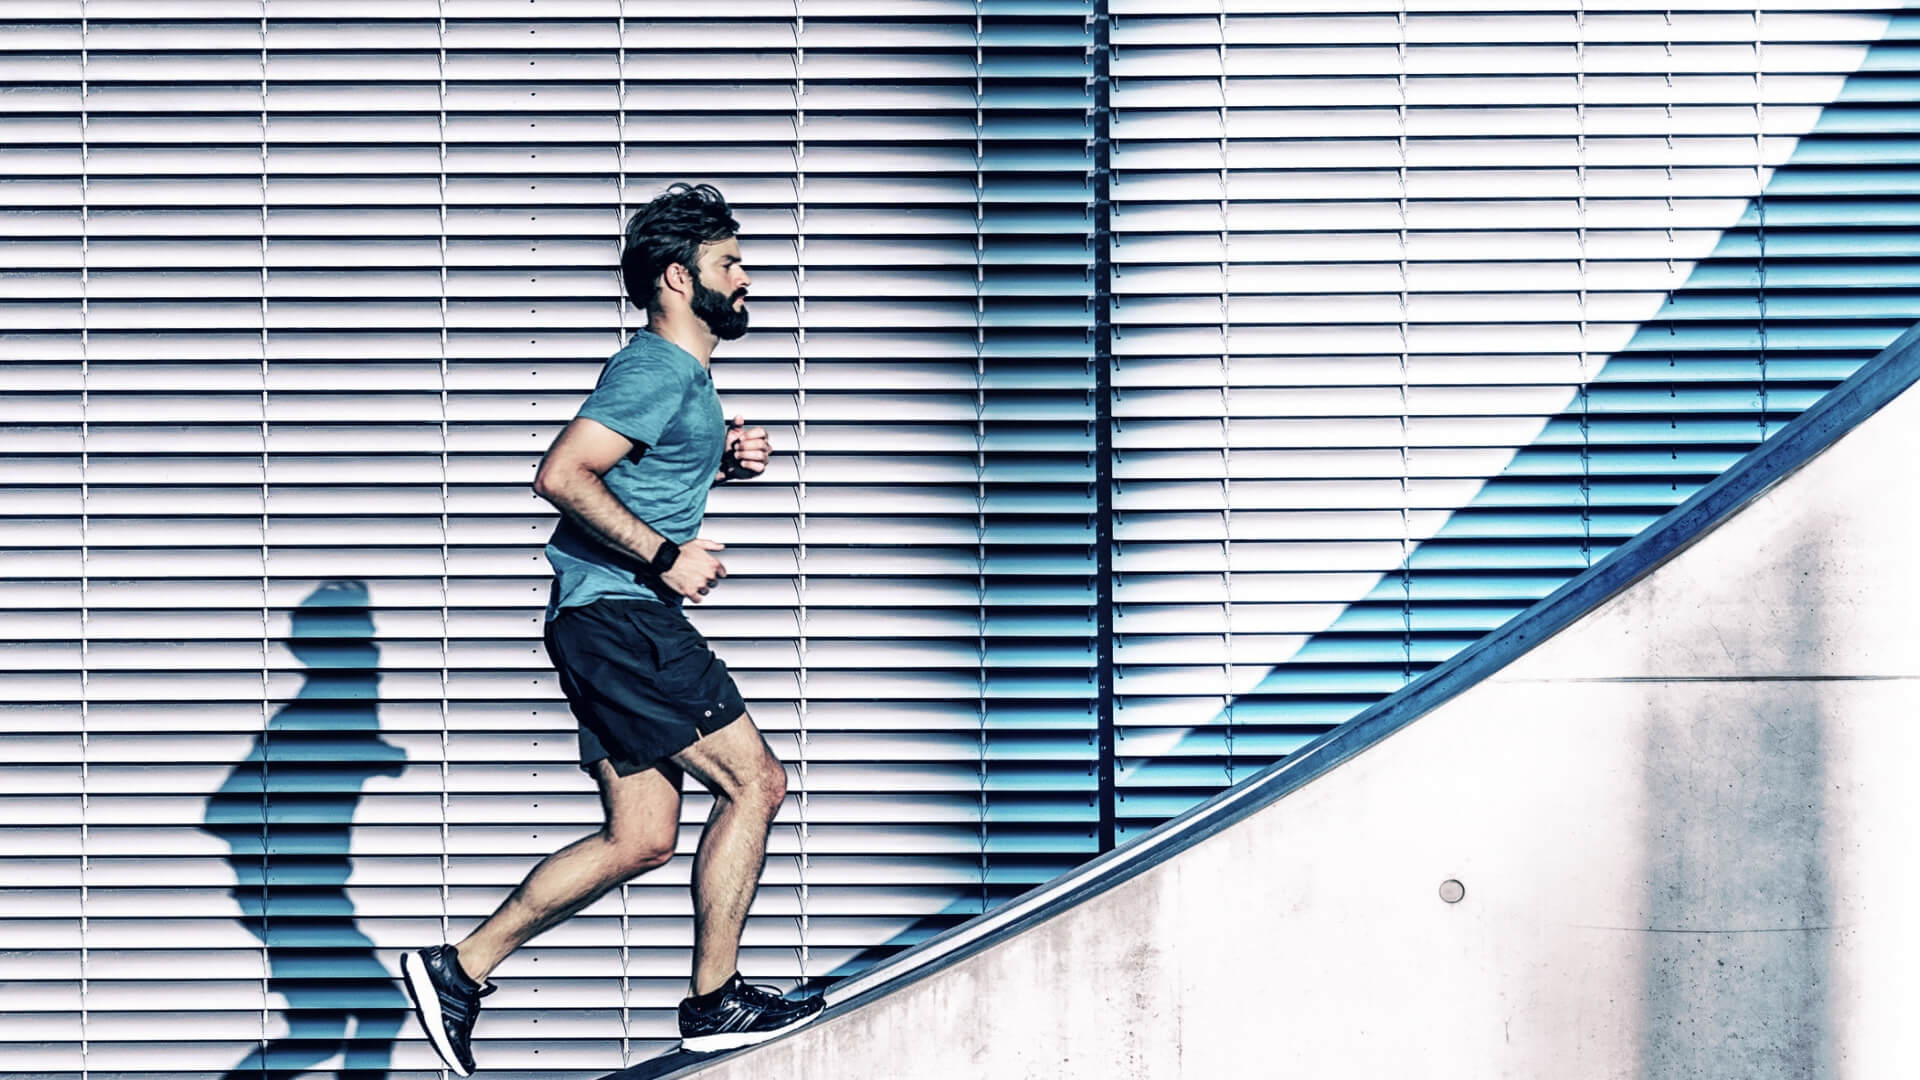 The Top 10 Fitness Trends of 2019